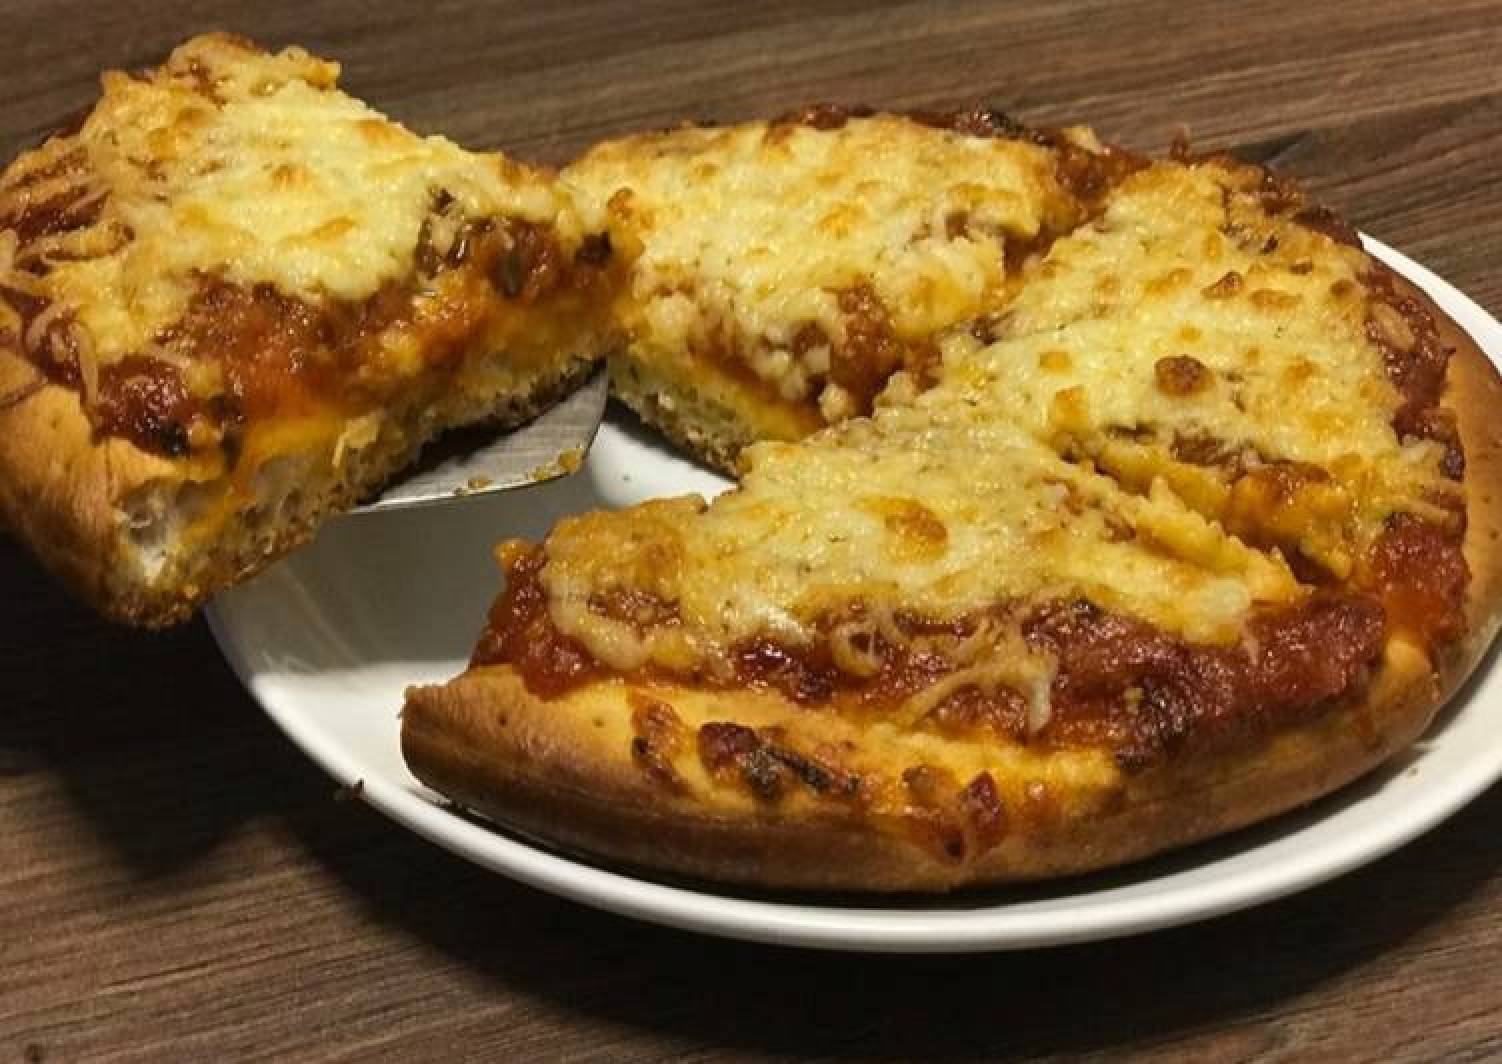 Homemade Margarita Pizza Without onion garlic